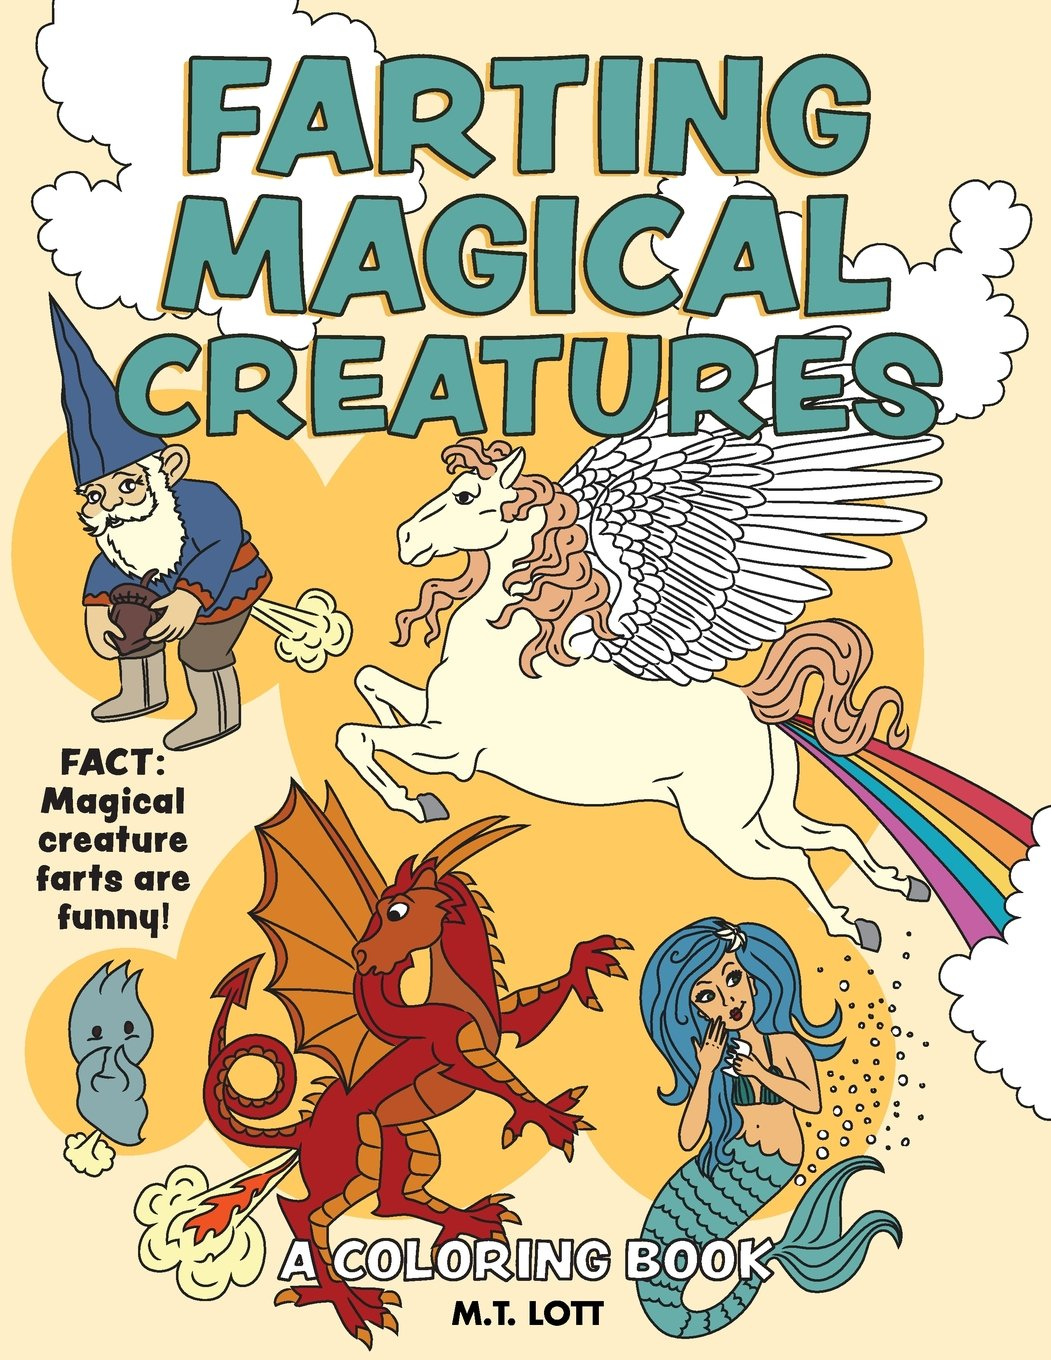 A fun magic coloring book amazon - Amazon Com Farting Magical Creatures Coloring Book 9781542366106 M T Lott Books